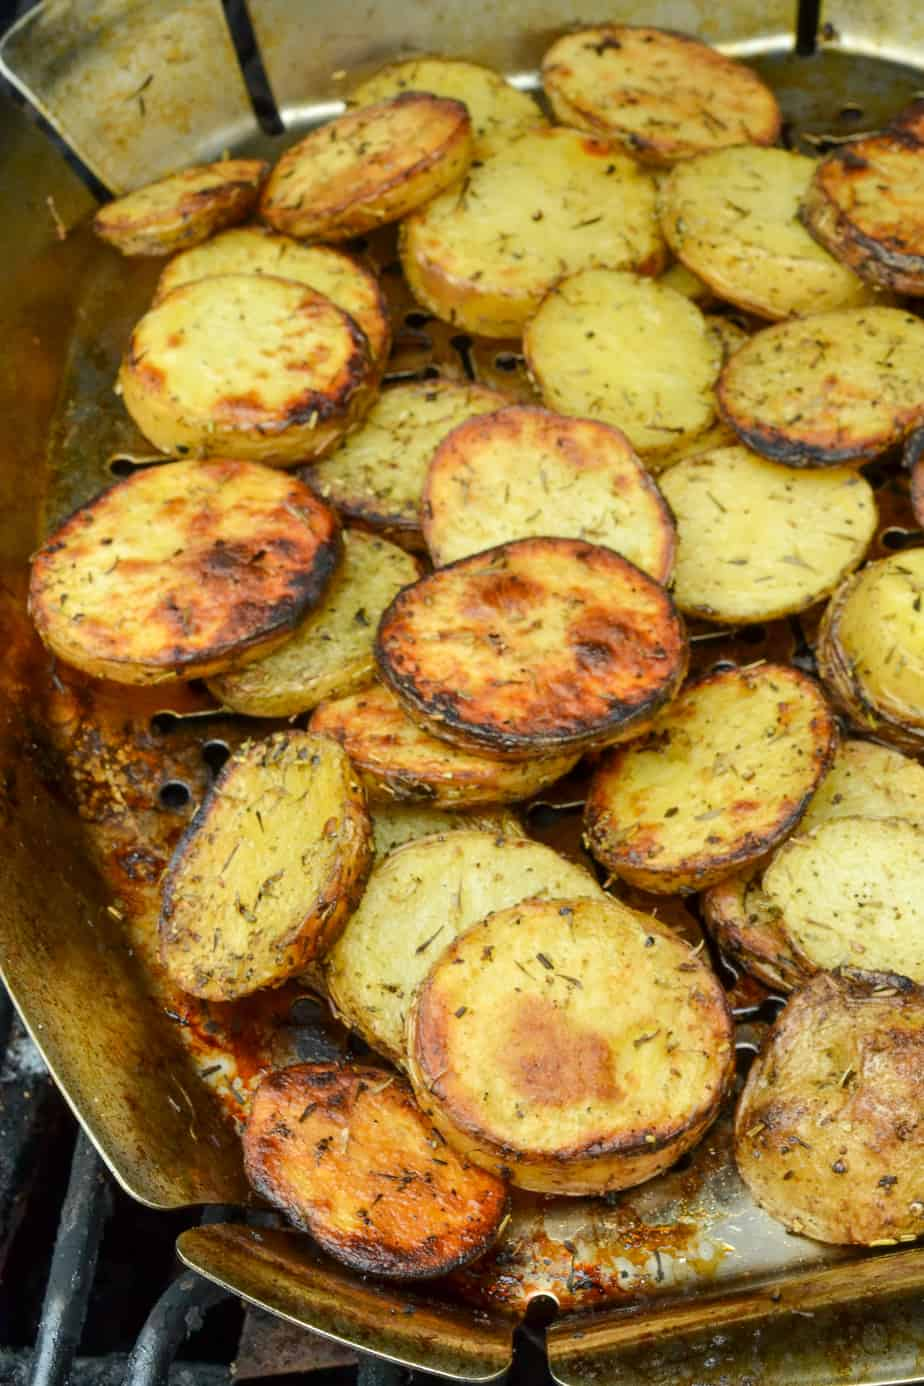 Grill basket full of herb potatoes